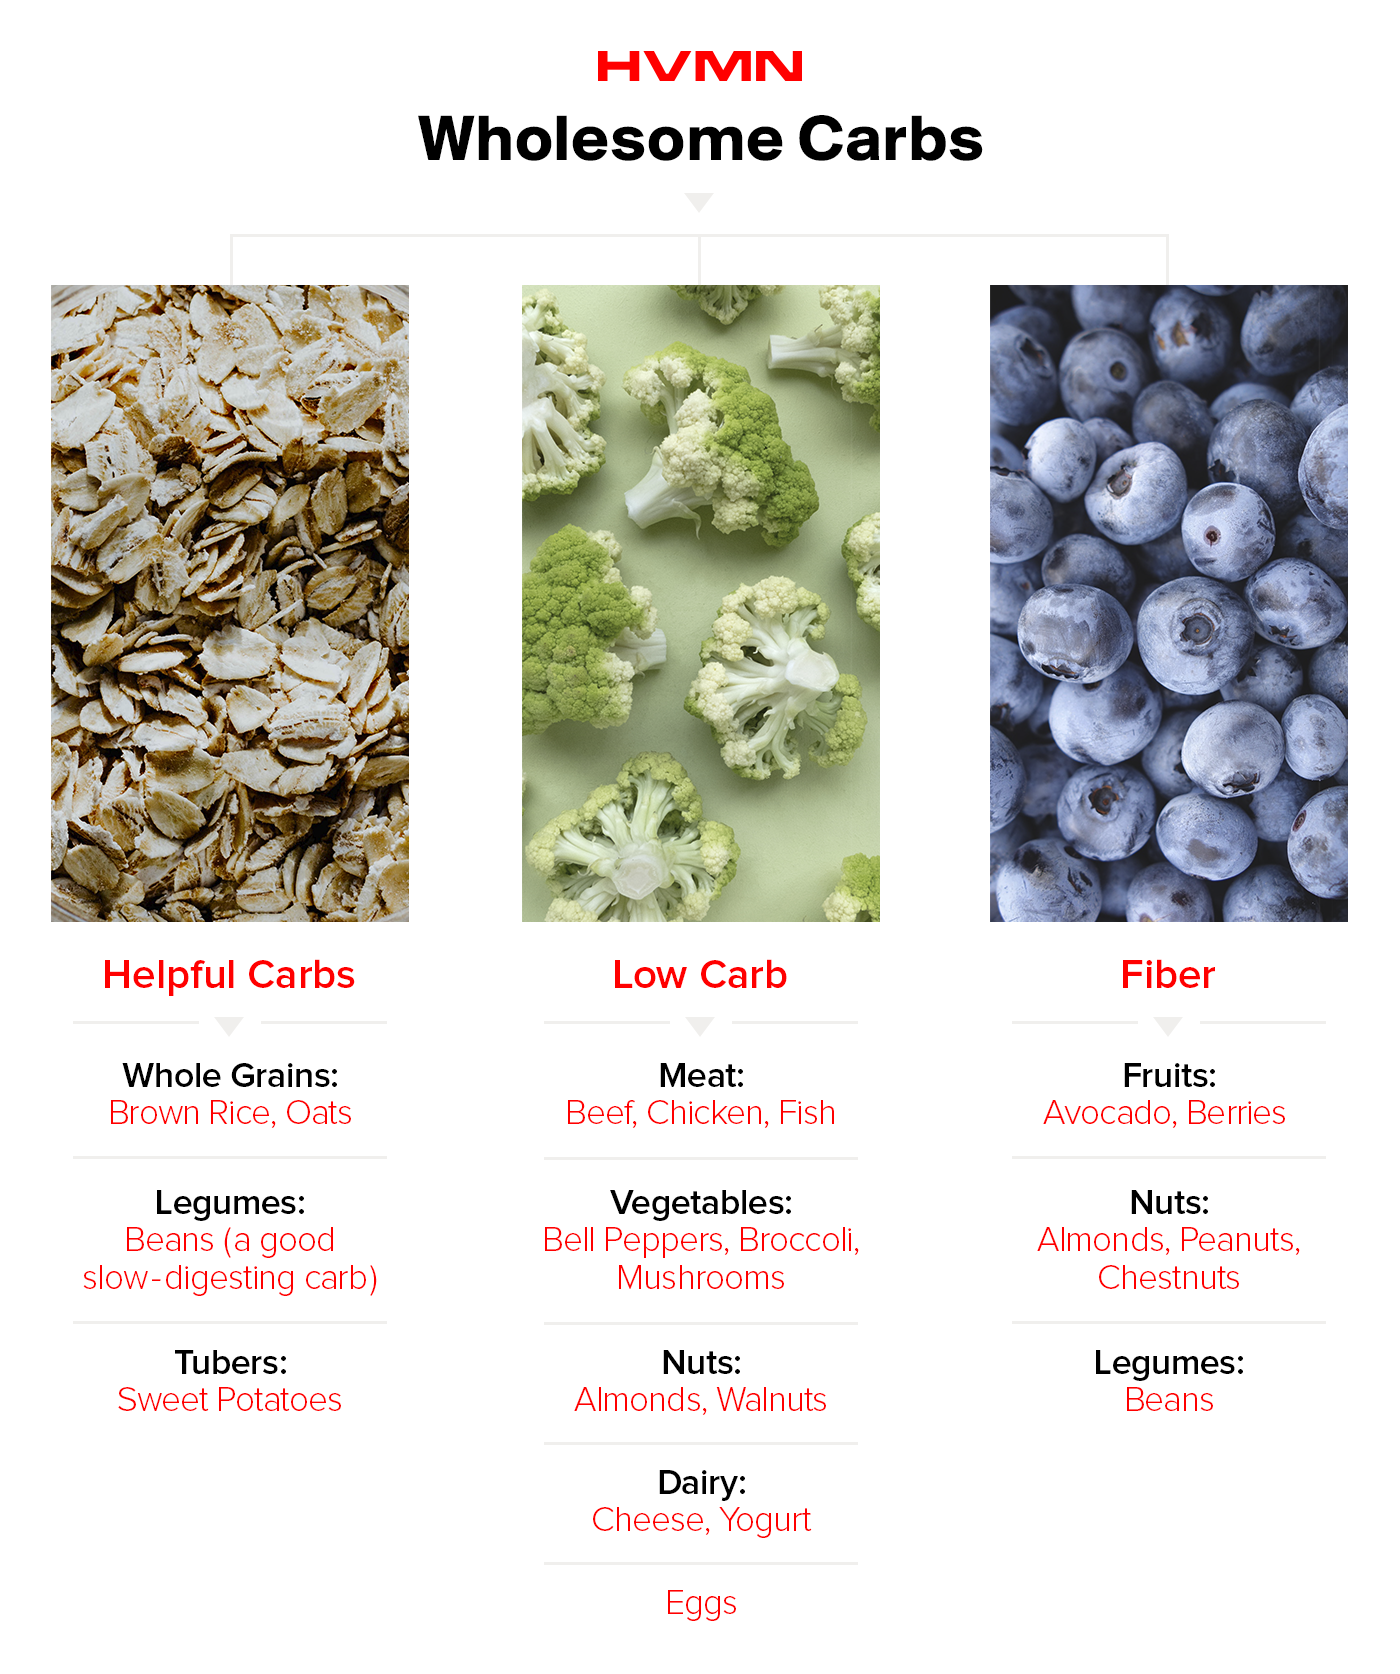 An image of oats, broccoli and blueberries showing helpful carbs, food low in carbs and foods with fiber